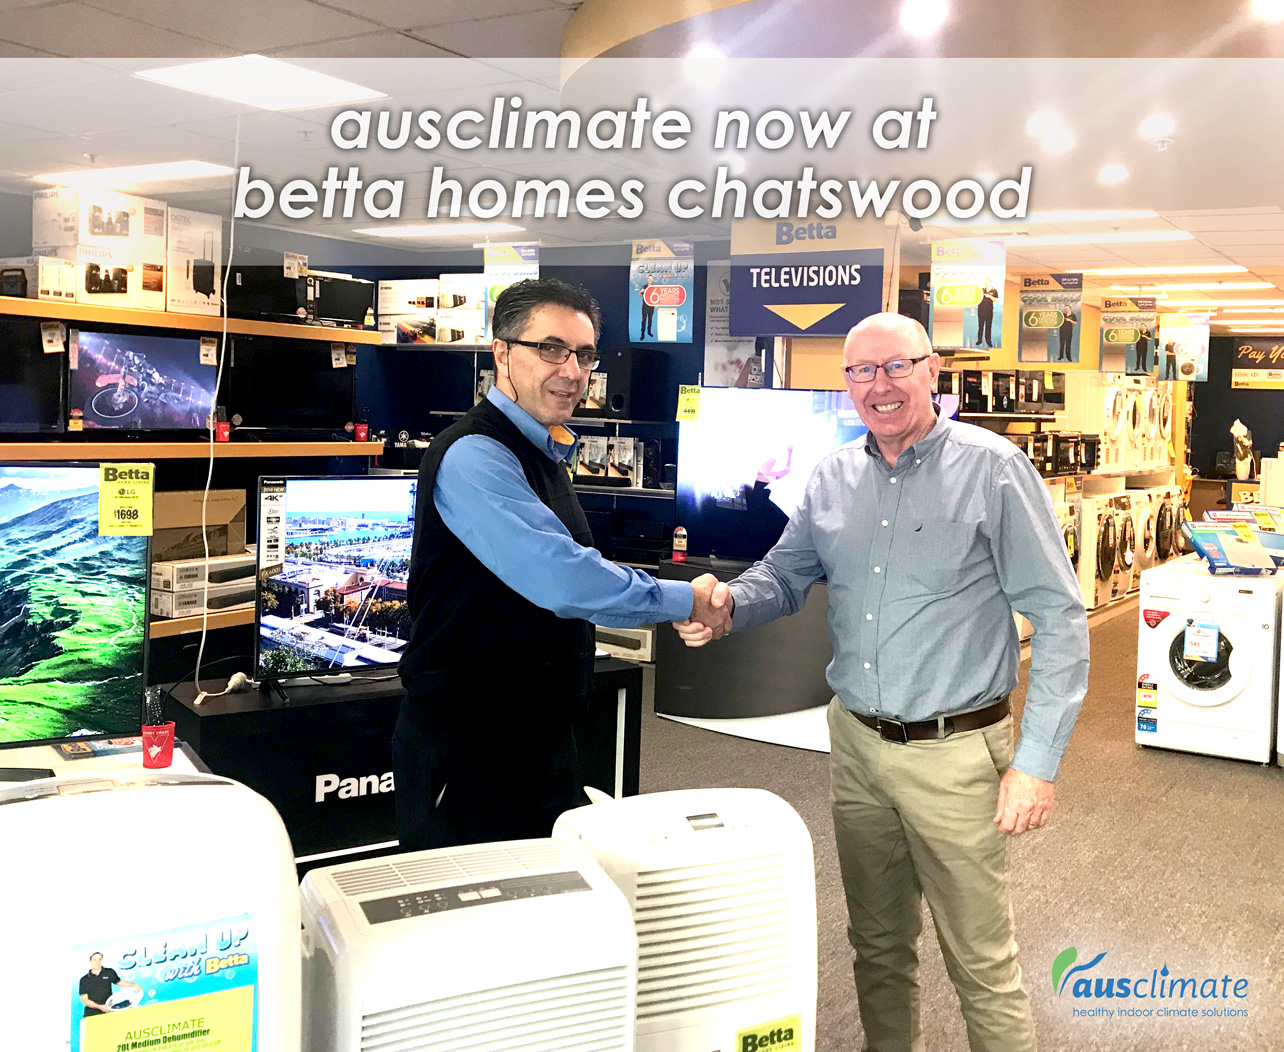 Ausclimate-at-Betta-Homes-Chatswood